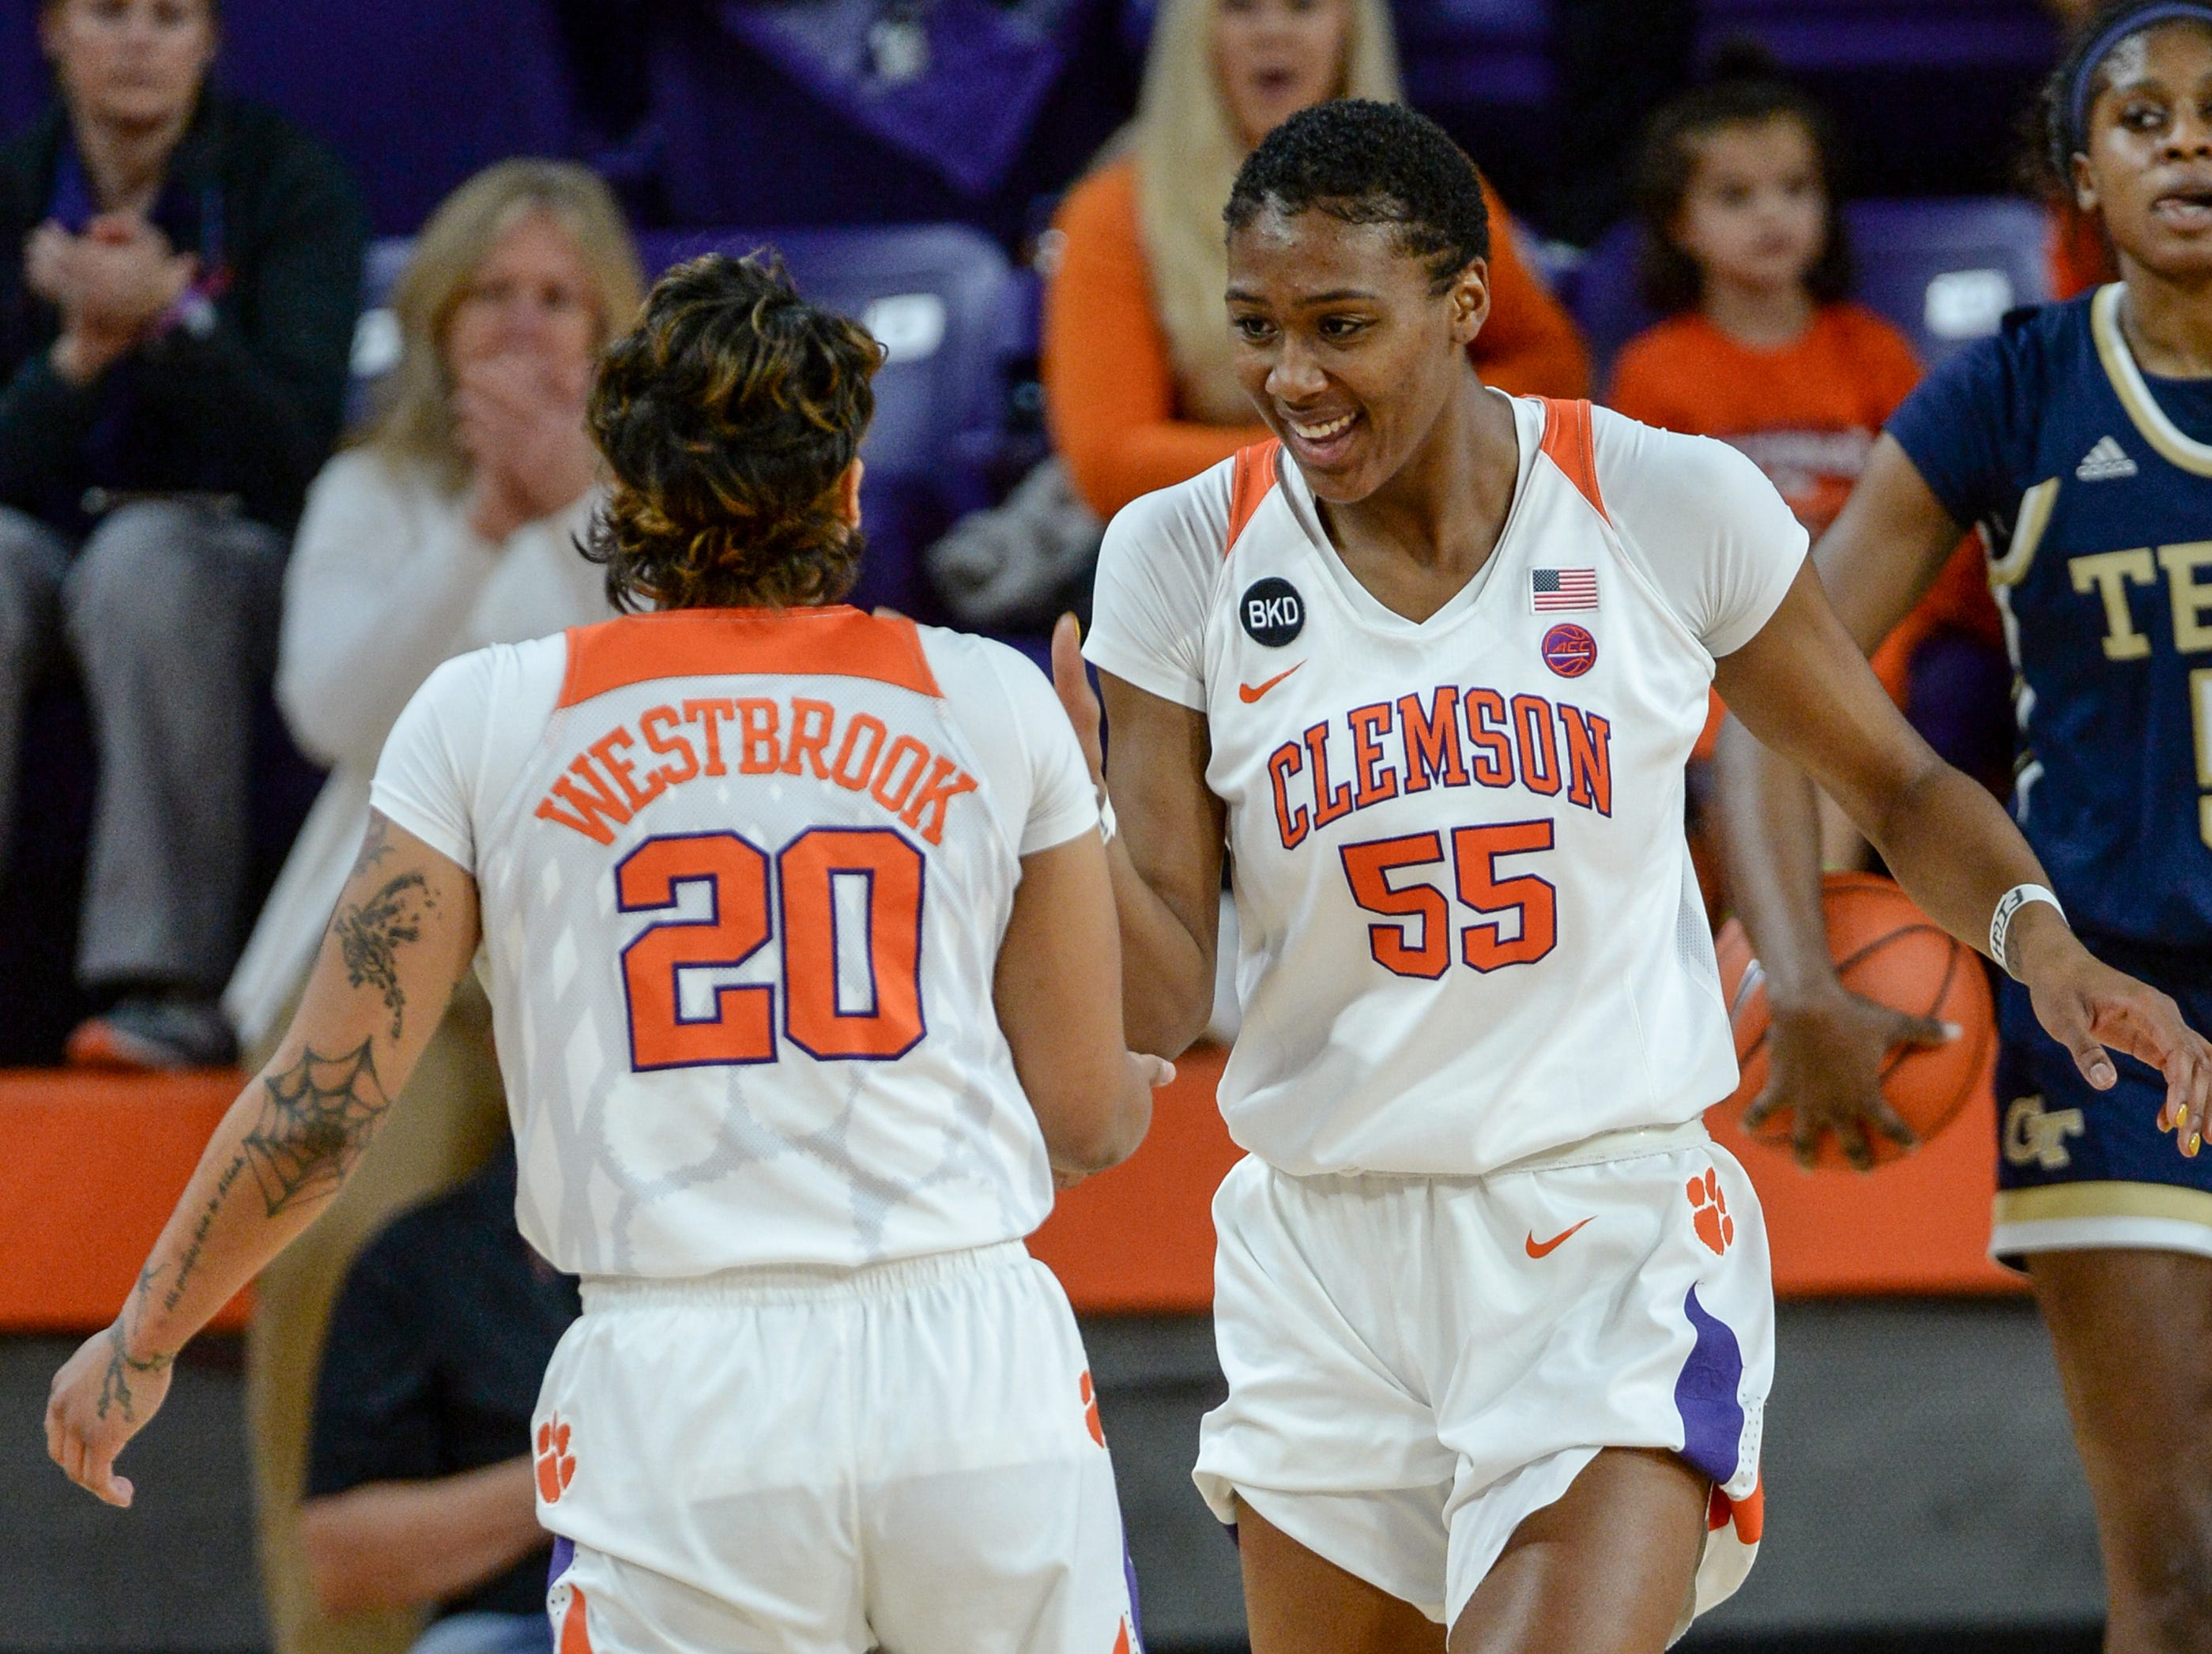 Clemson guard Simone Westbrook(20) is congratulated nay teammate Tylar Bennett(55) for a defensive stop during the second quarter at Littlejohn Coliseum in Clemson Thursday, January 17, 2019.